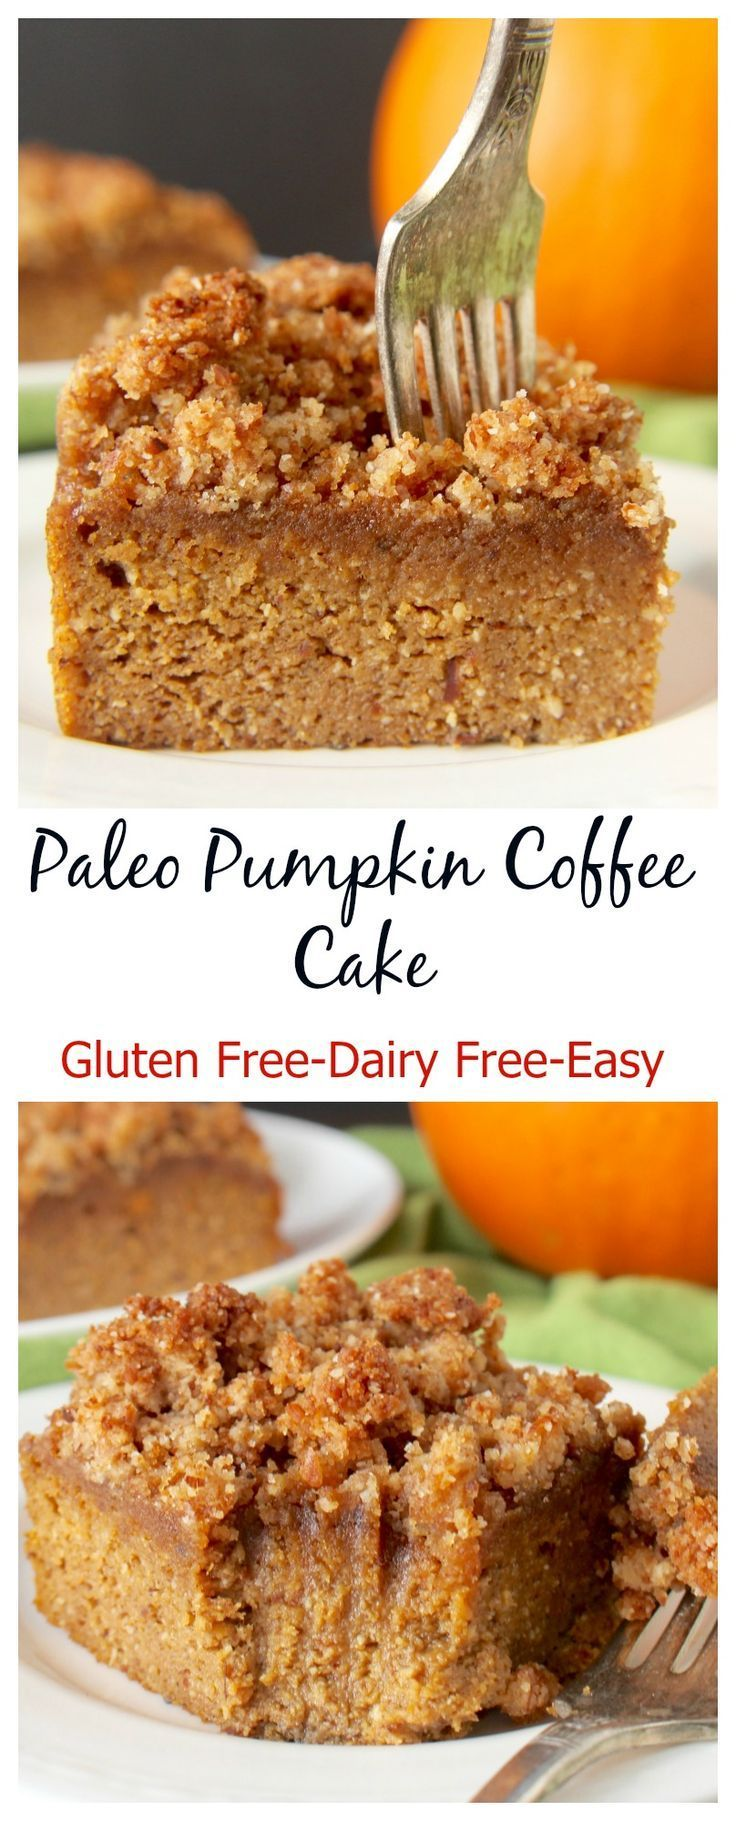 Looking for the perfect fall dessert? Try this Paleo Pumpkin Coffee Cake. It is…